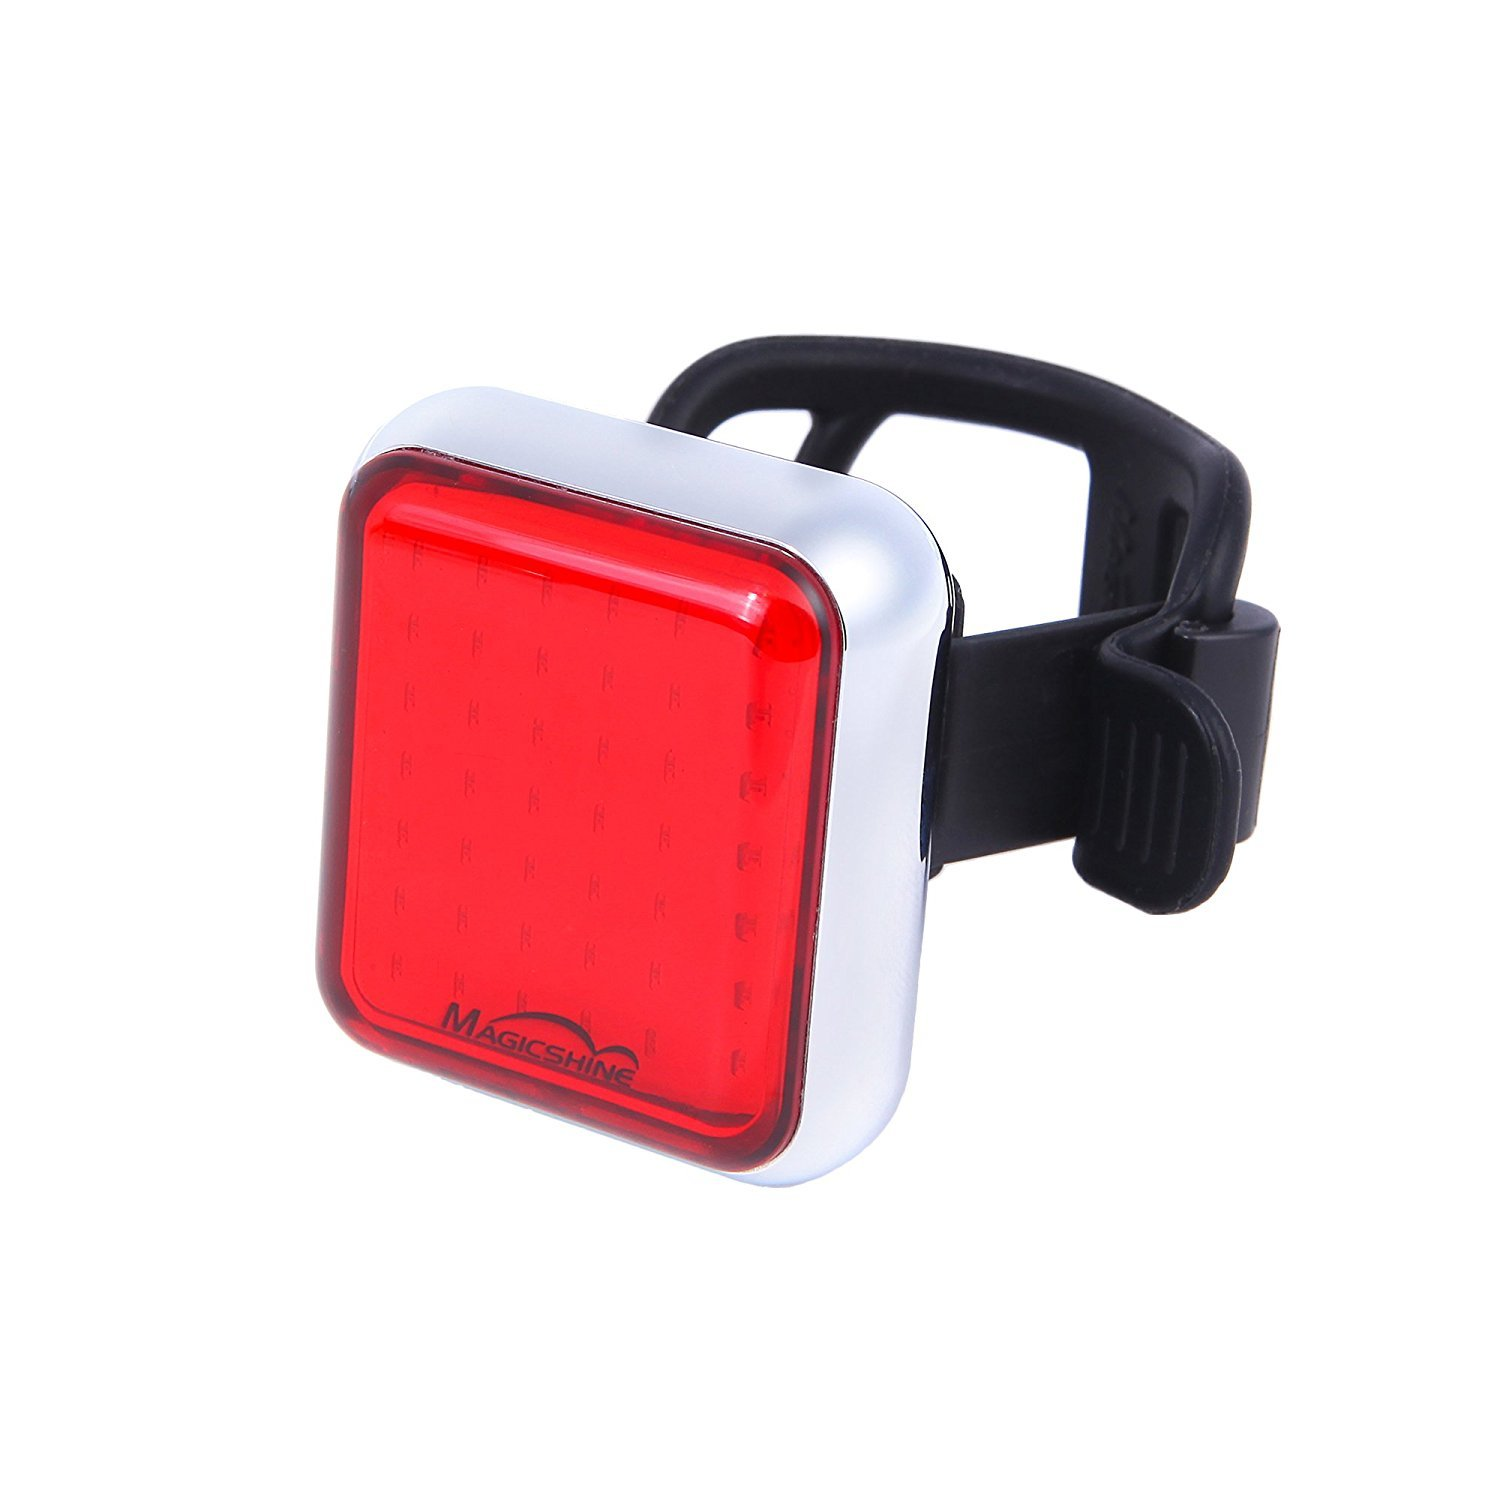 Magicshine Seemee 60 Bike Taillight 60 lumens max Output Bike Blinker Light, Small, Portable, Convenient USB Rechargeable Rear Bike Light 2018 New Bike Lights